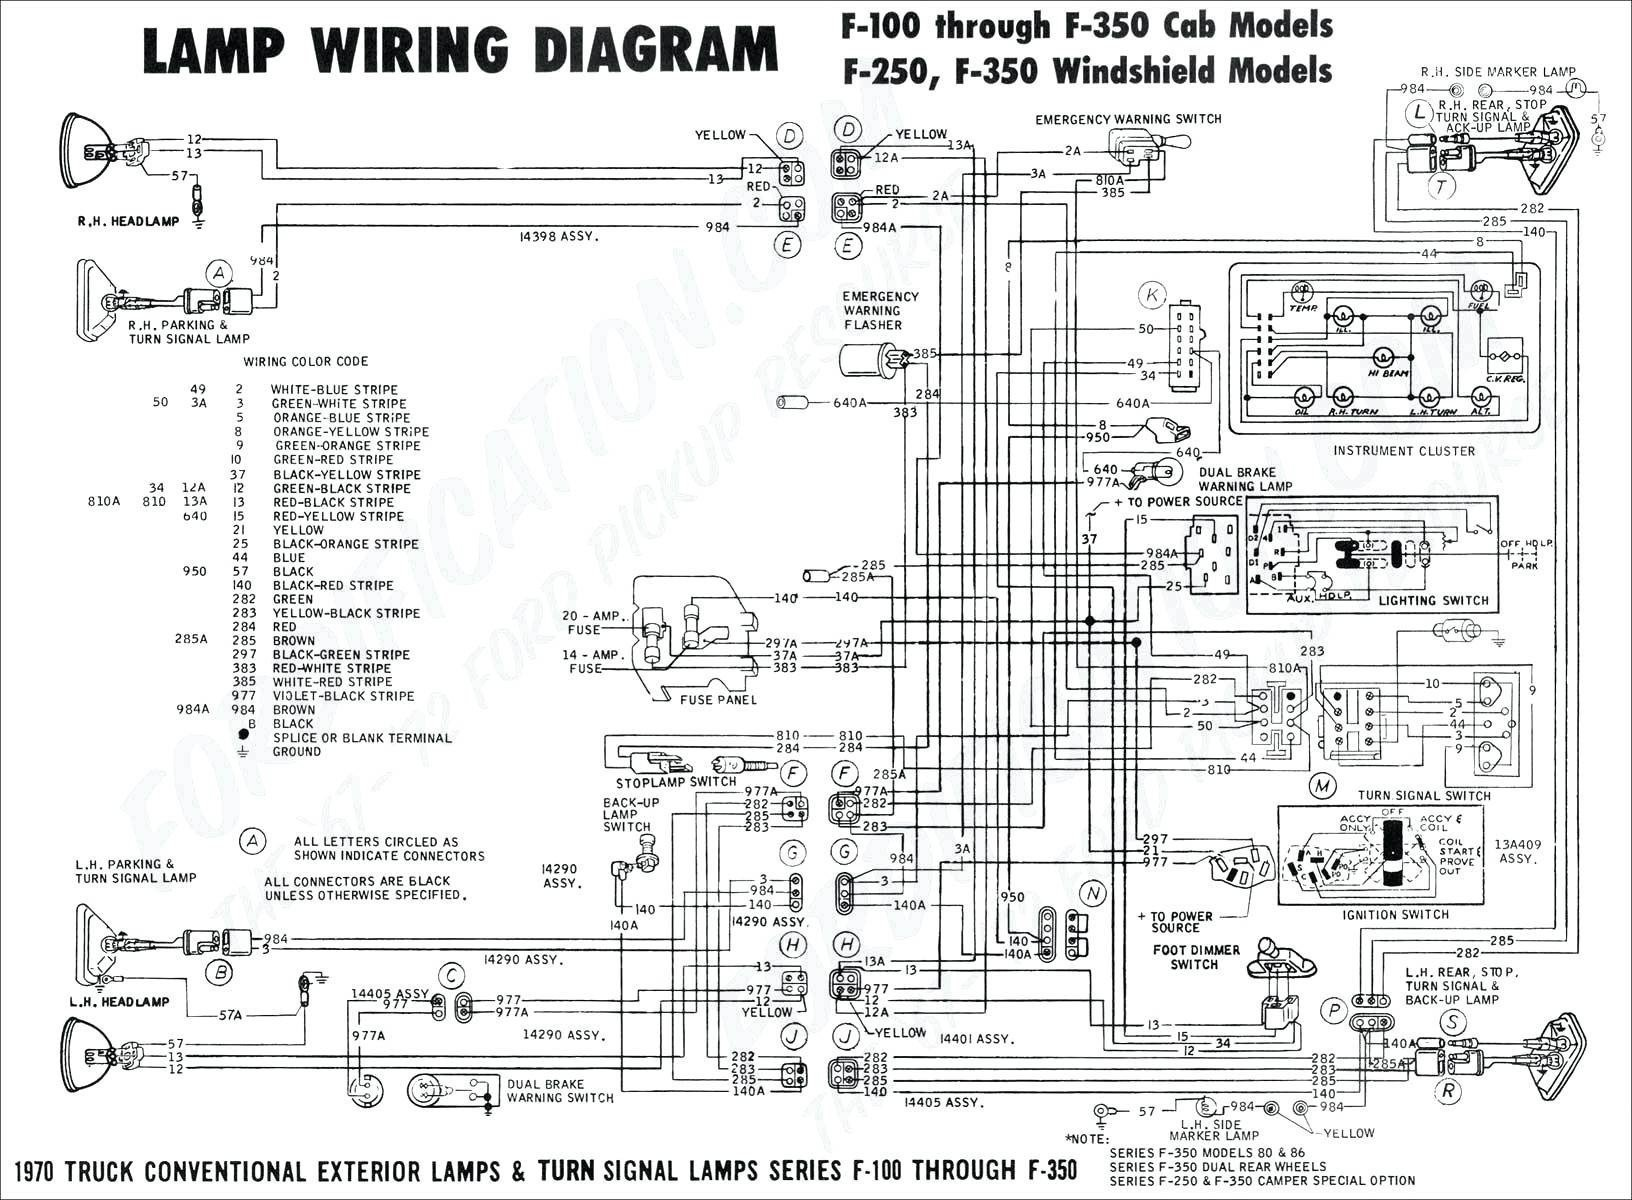 Mazda 3 Engine Parts Diagram 2001 Dodge Durango Parts Diagram Start Building A Wiring Diagram • Of Mazda 3 Engine Parts Diagram